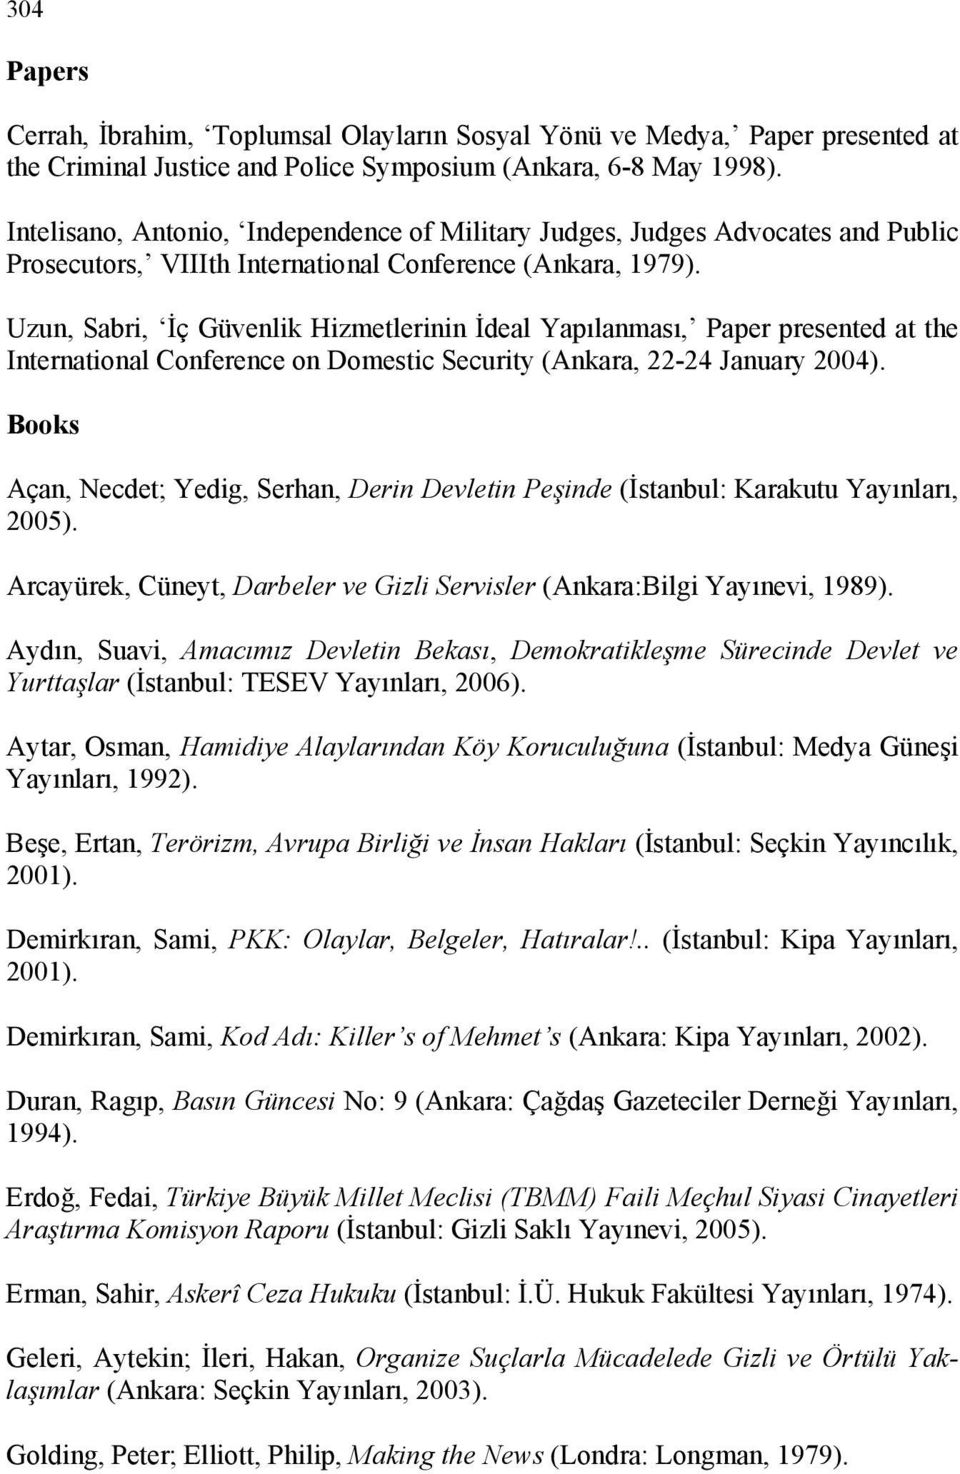 Uzun, Sabri, İç Güvenlik Hizmetlerinin İdeal Yapılanması, Paper presented at the International Conference on Domestic Security (Ankara, 22-24 January 2004).